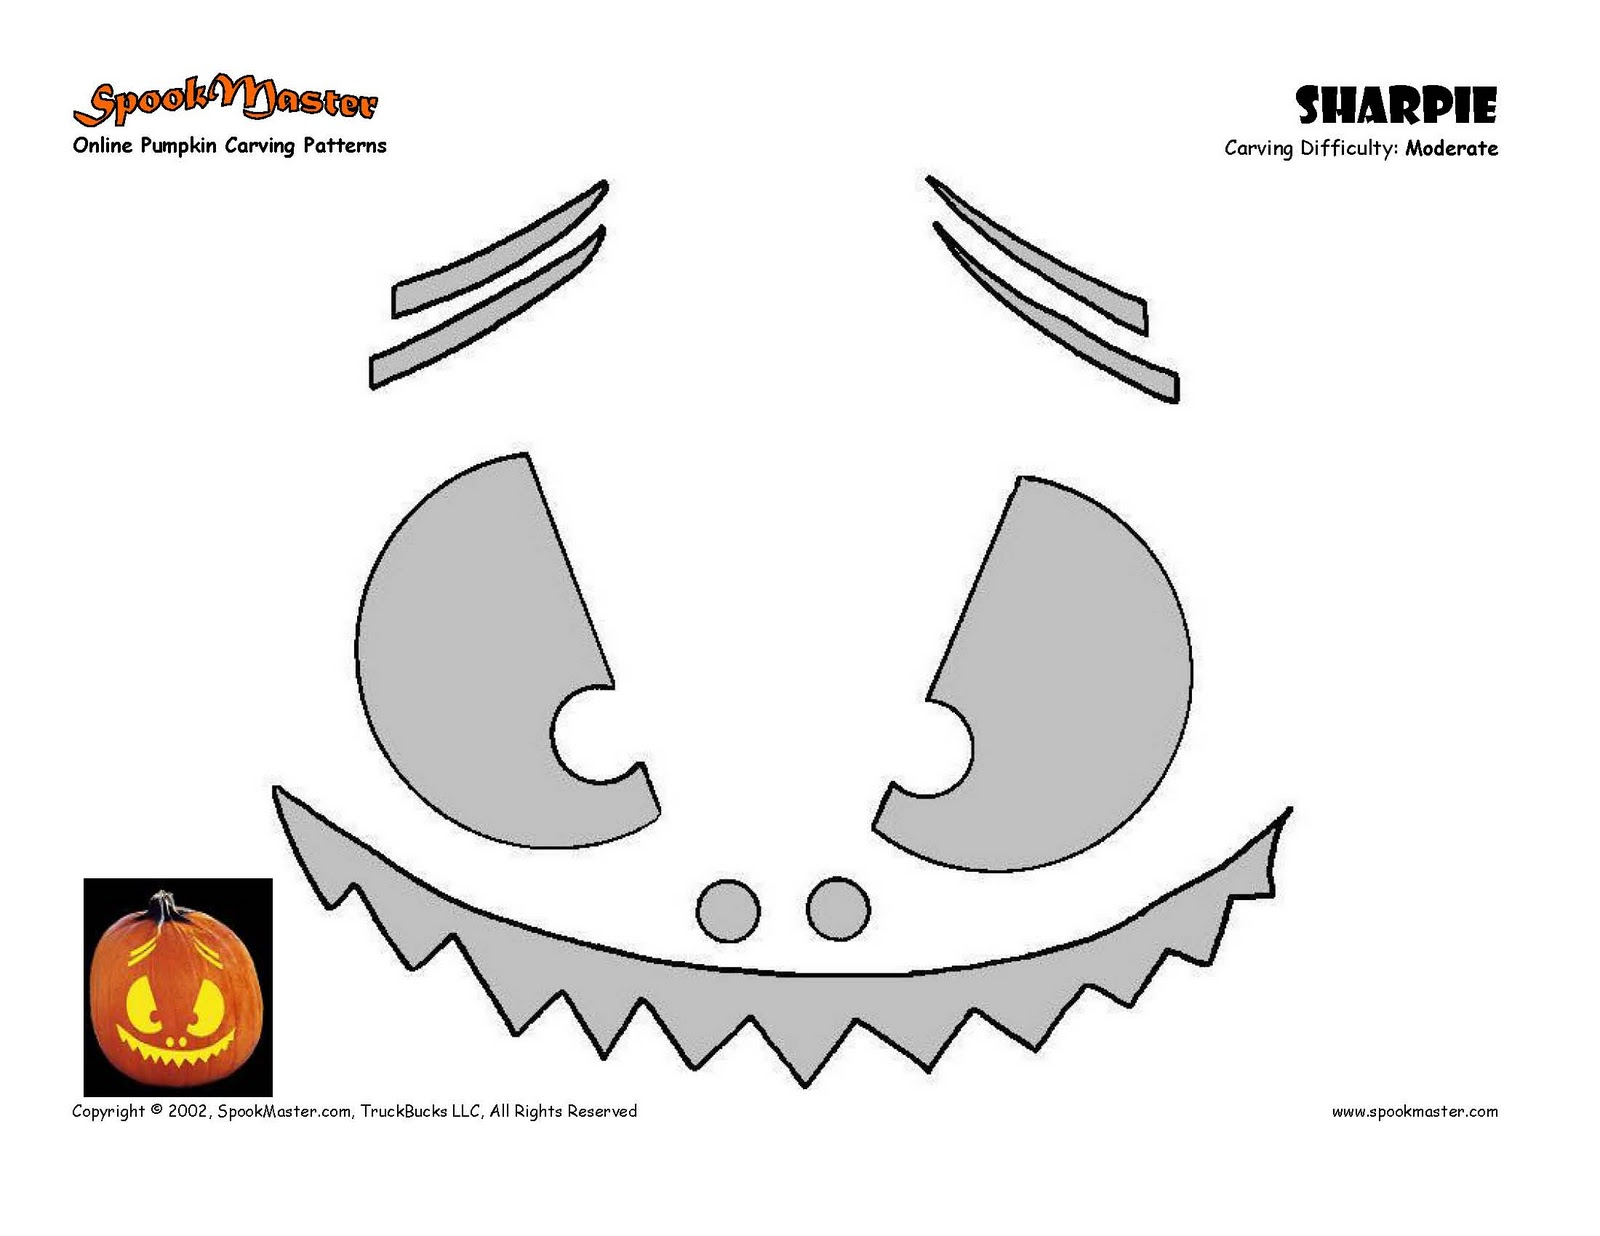 Lonely Paper Designs Freebies Pumpkin Carving Templates